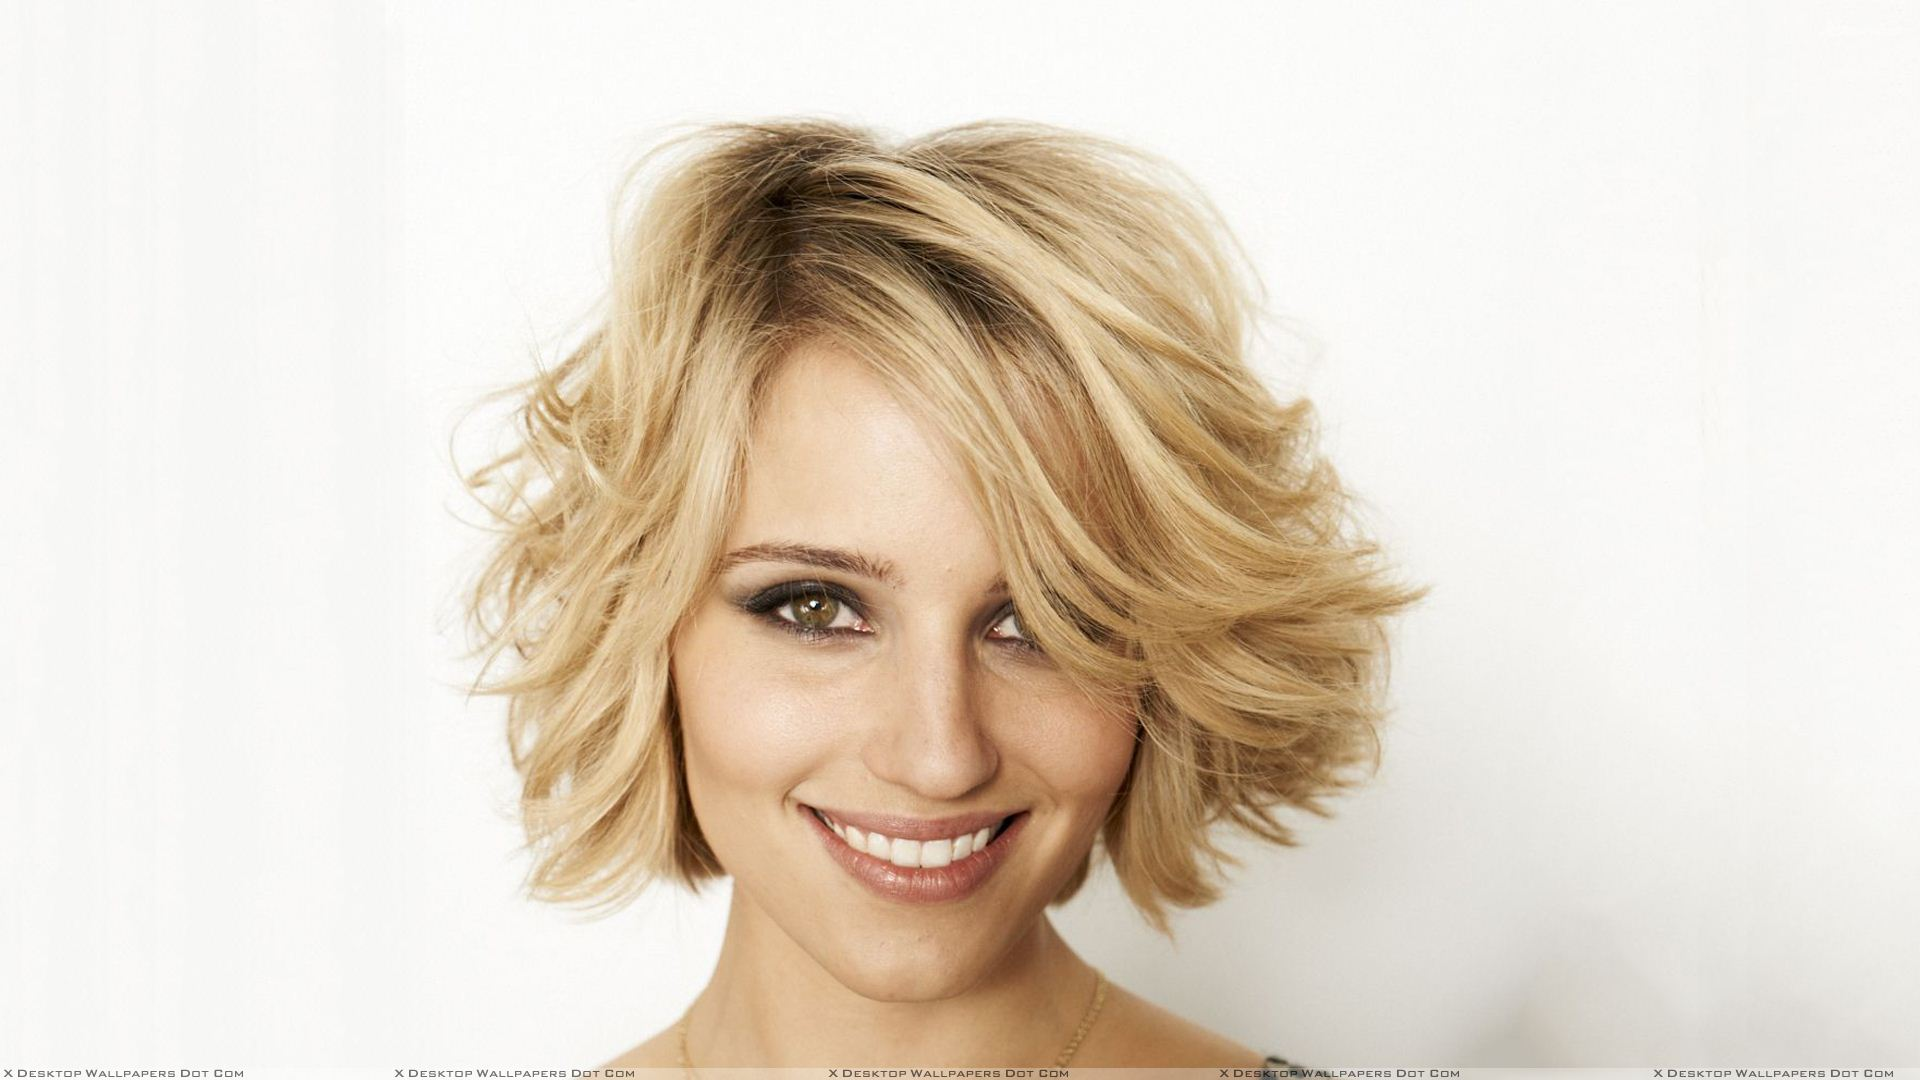 Dianna Agron download wallpapers